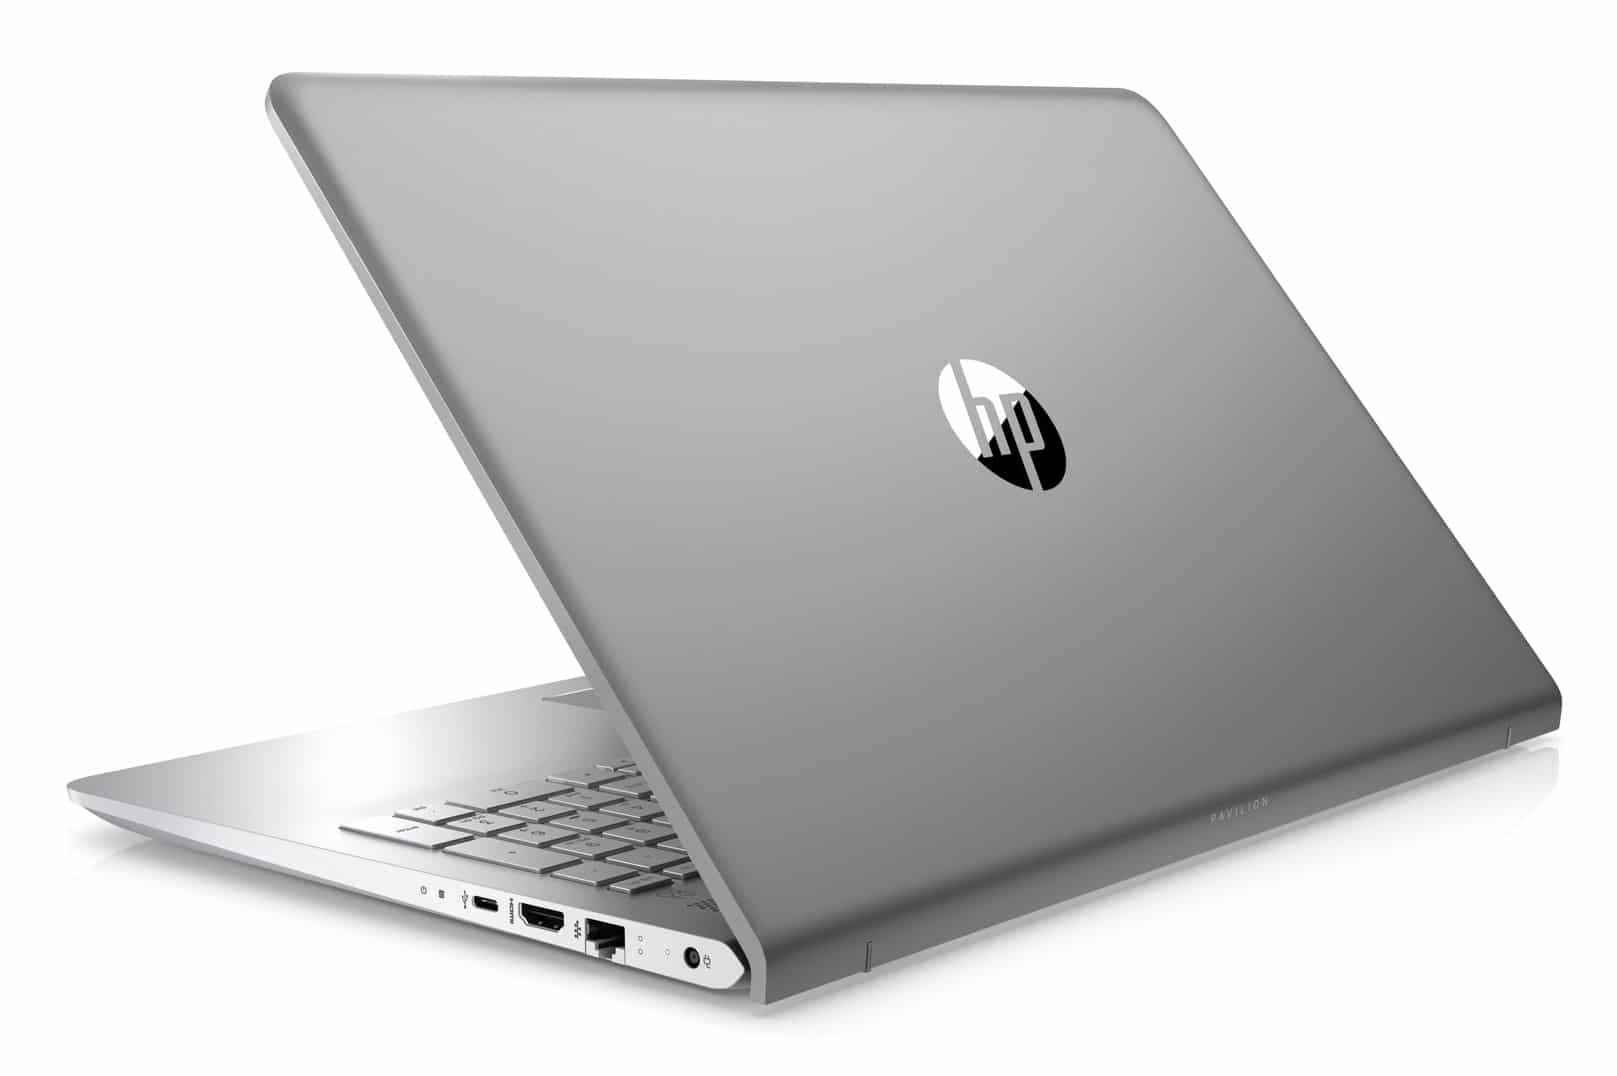 HP Pavilion 15-cc001nf, PC portable 15 pouces Full i7 Kaby SSD+HDD pack à 829€